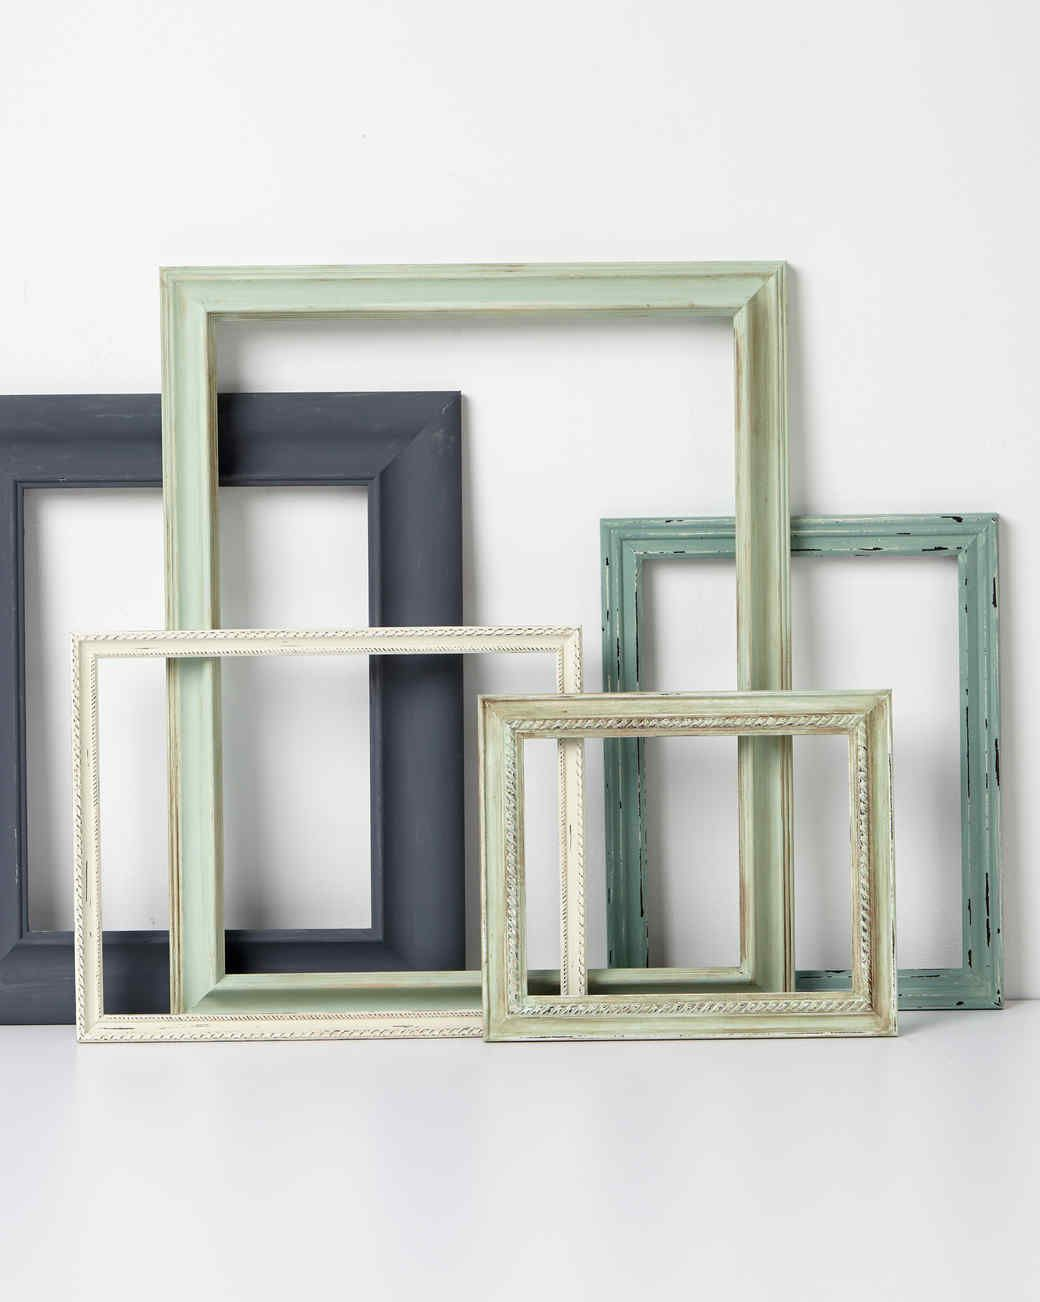 Vintage Frames | Crafts, Painted picture frames and Frames ideas